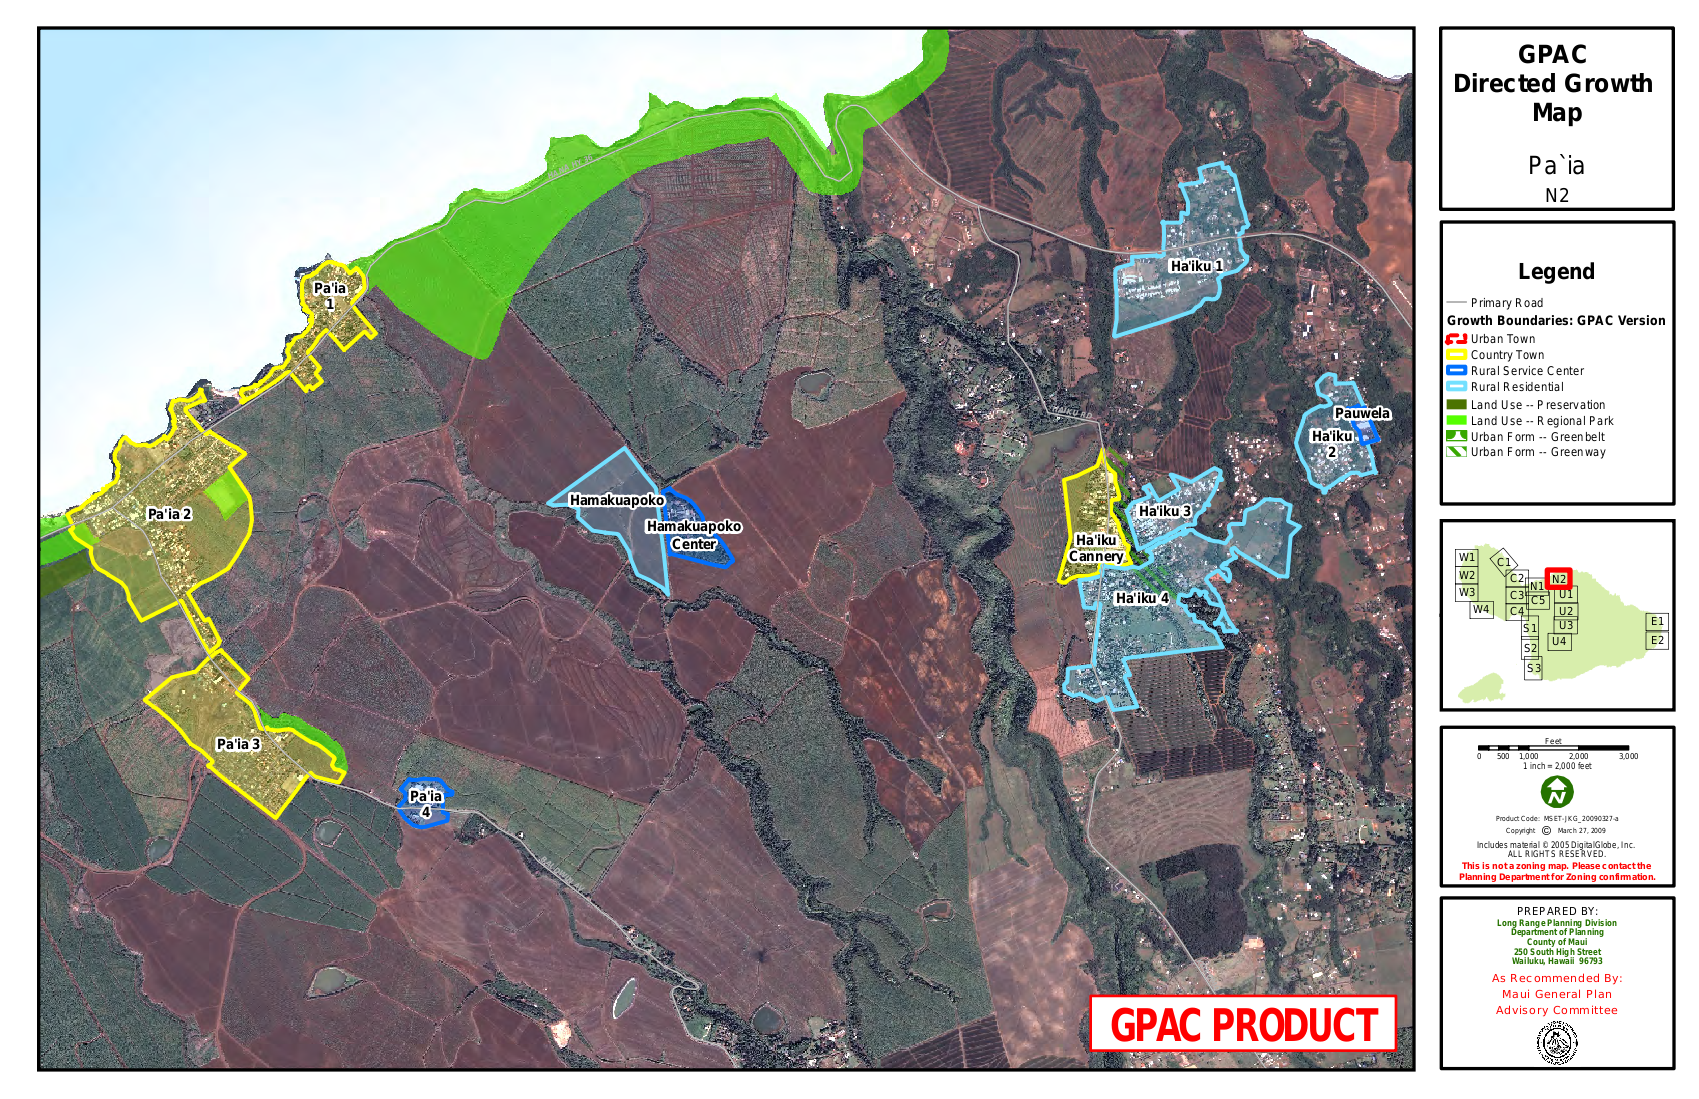 GPAC Directed Growth Map Paia